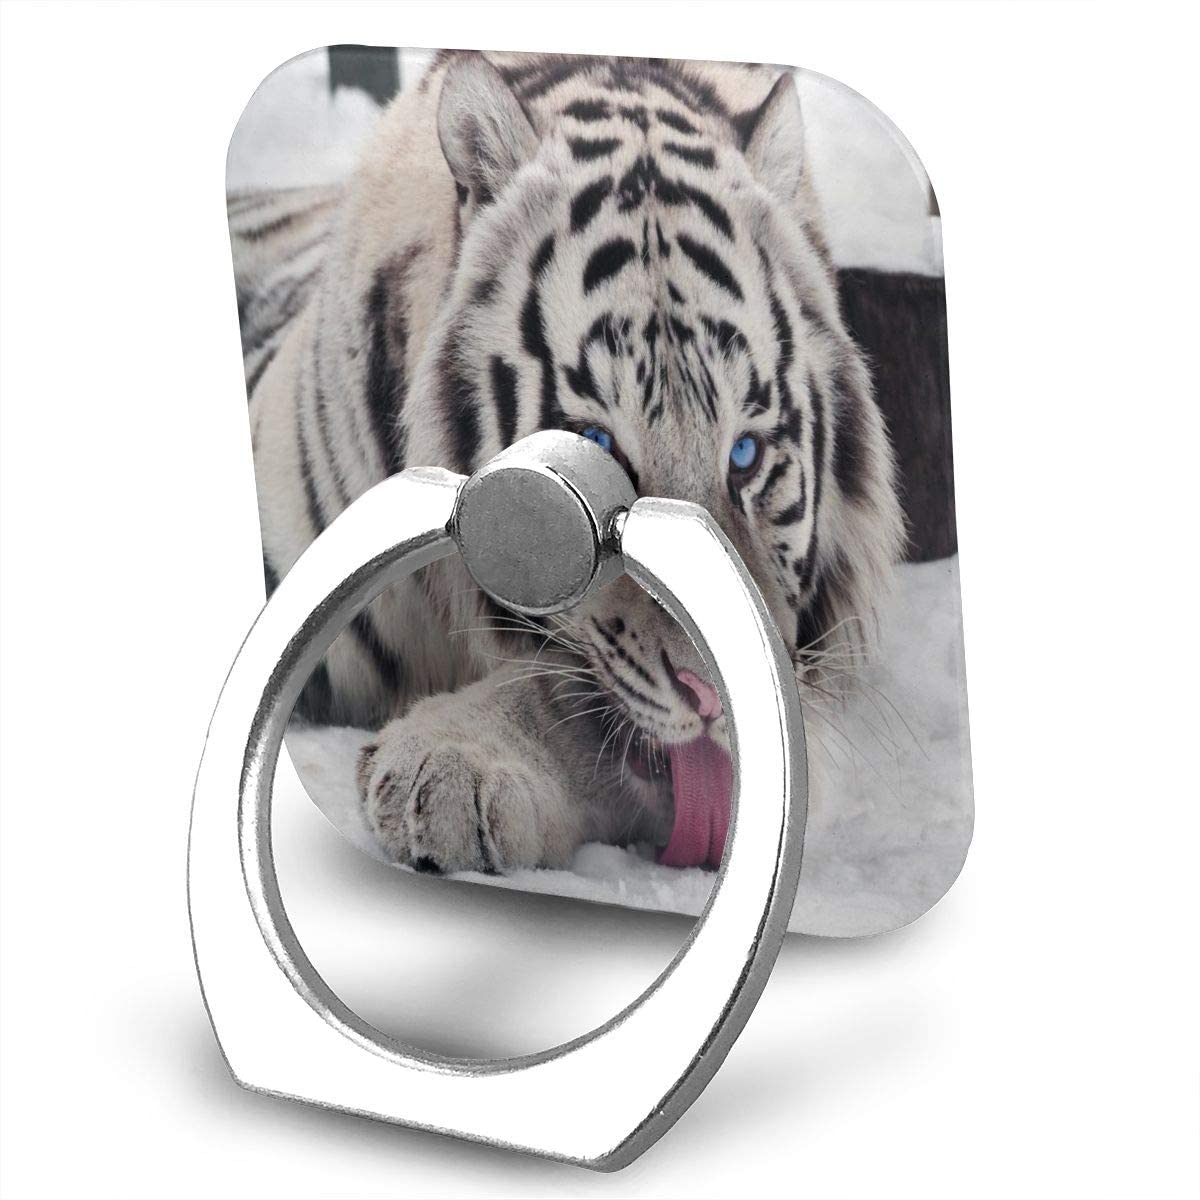 SLHFPX Universal Phone Ring Holder Trendy White Tiger Square Cell Phone Ring Stand Adjustable 360°Rotation Finger Kickstand Grip-Silver Mobile Phone Stand for Women Kids Men Ladies Smartphones